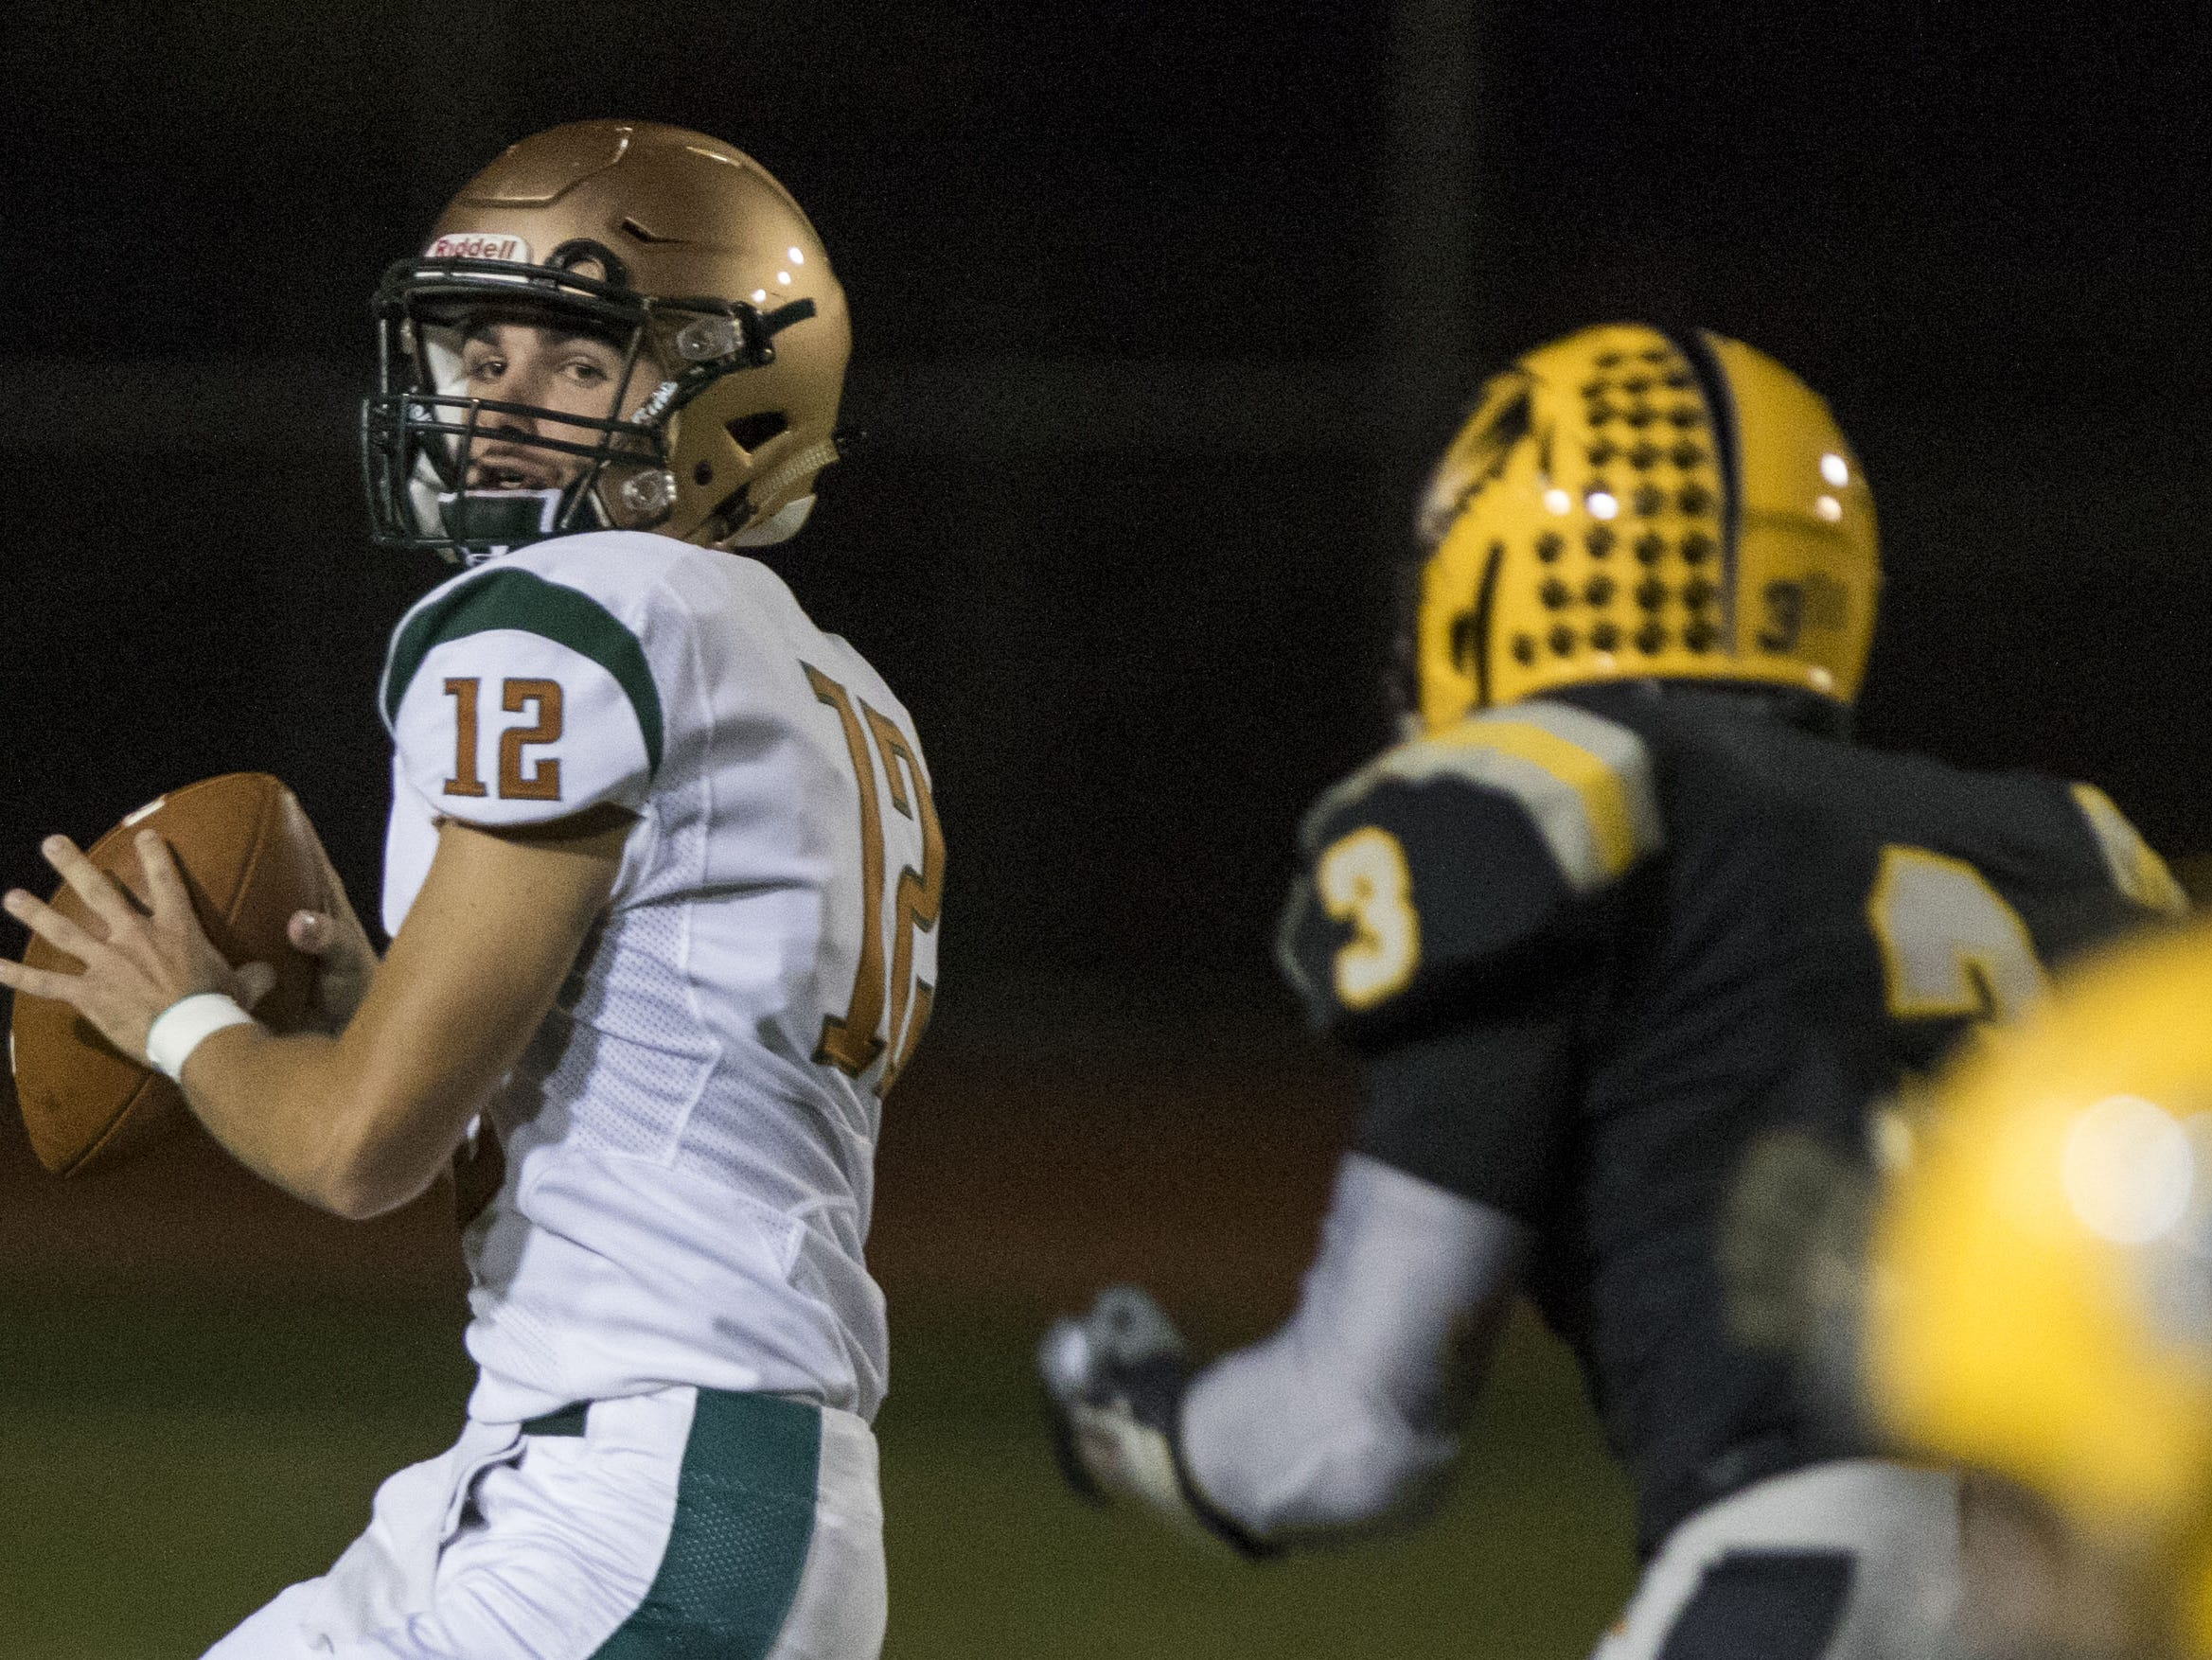 Campo Verde quarterback Parker Nuzman looks downfield for a receiver during their game with Gilbert Friday, Sept. 21, 2018. #azhsfb